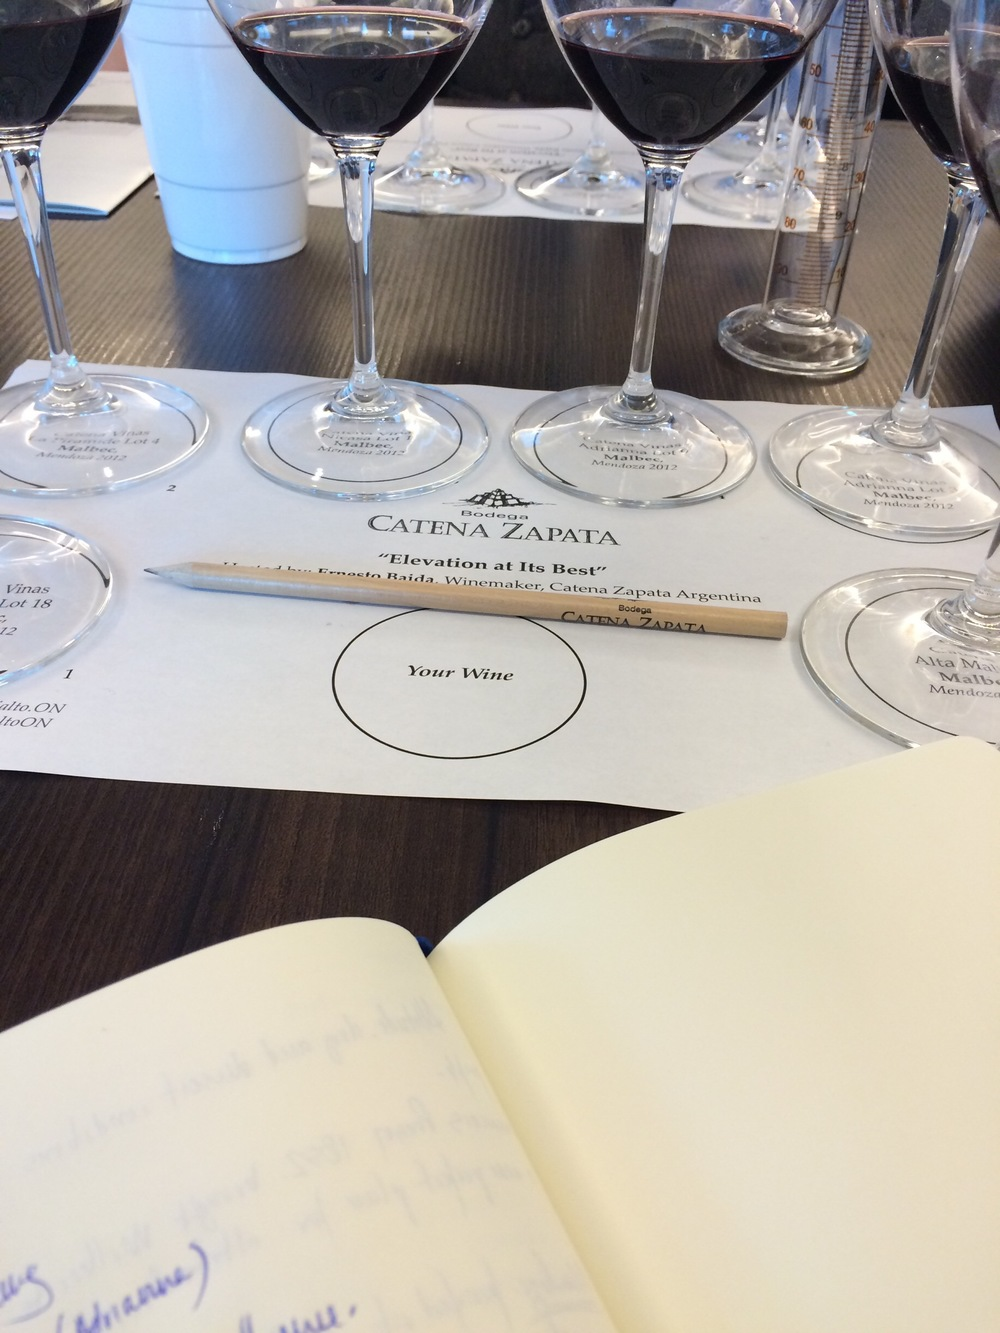 the tasting begins. CATENA ZAPATA